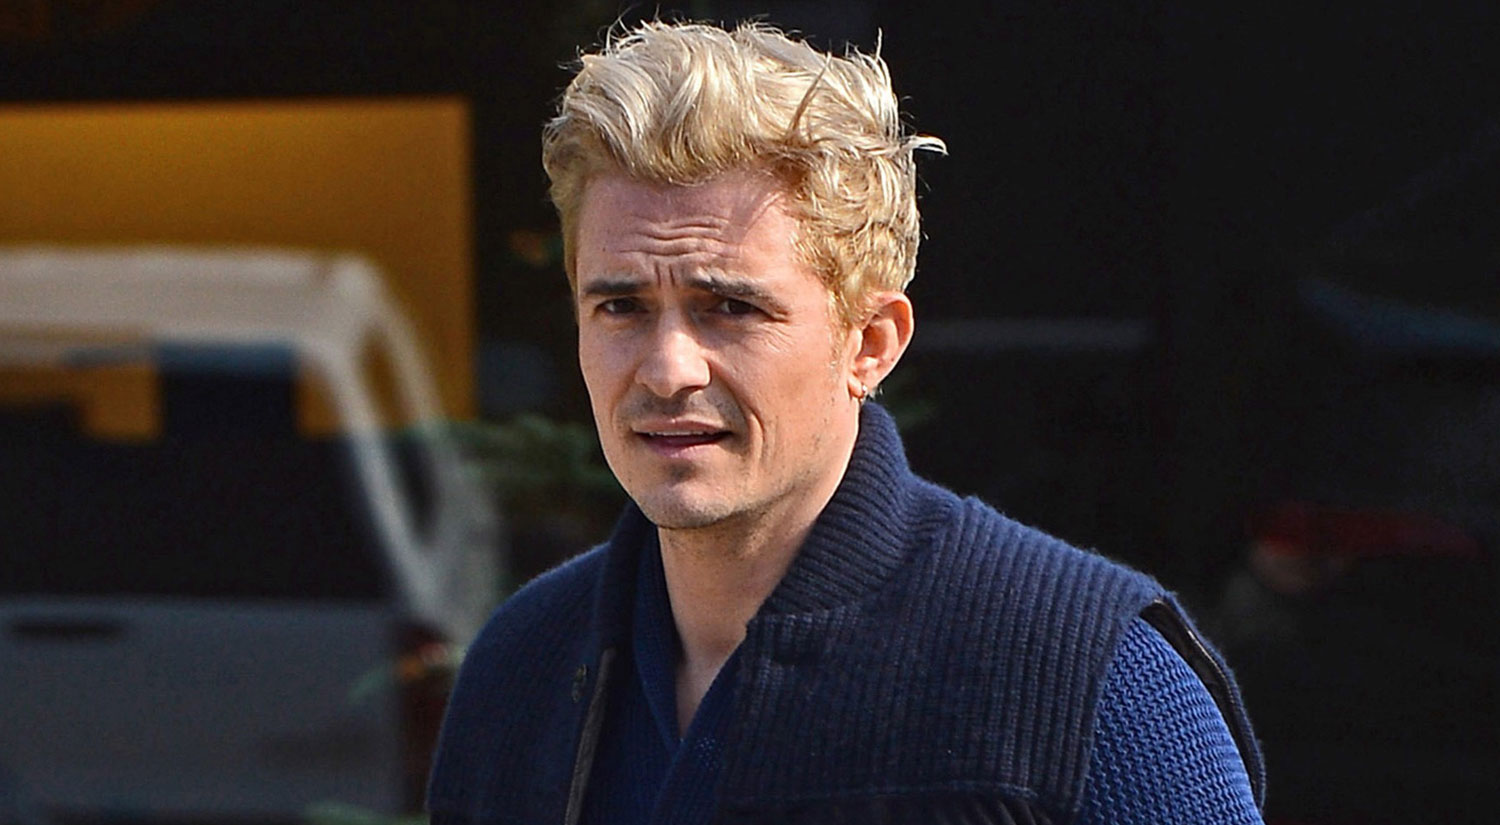 Orlando Bloom Gets Another Touch Up On His Blond Hair Orlando